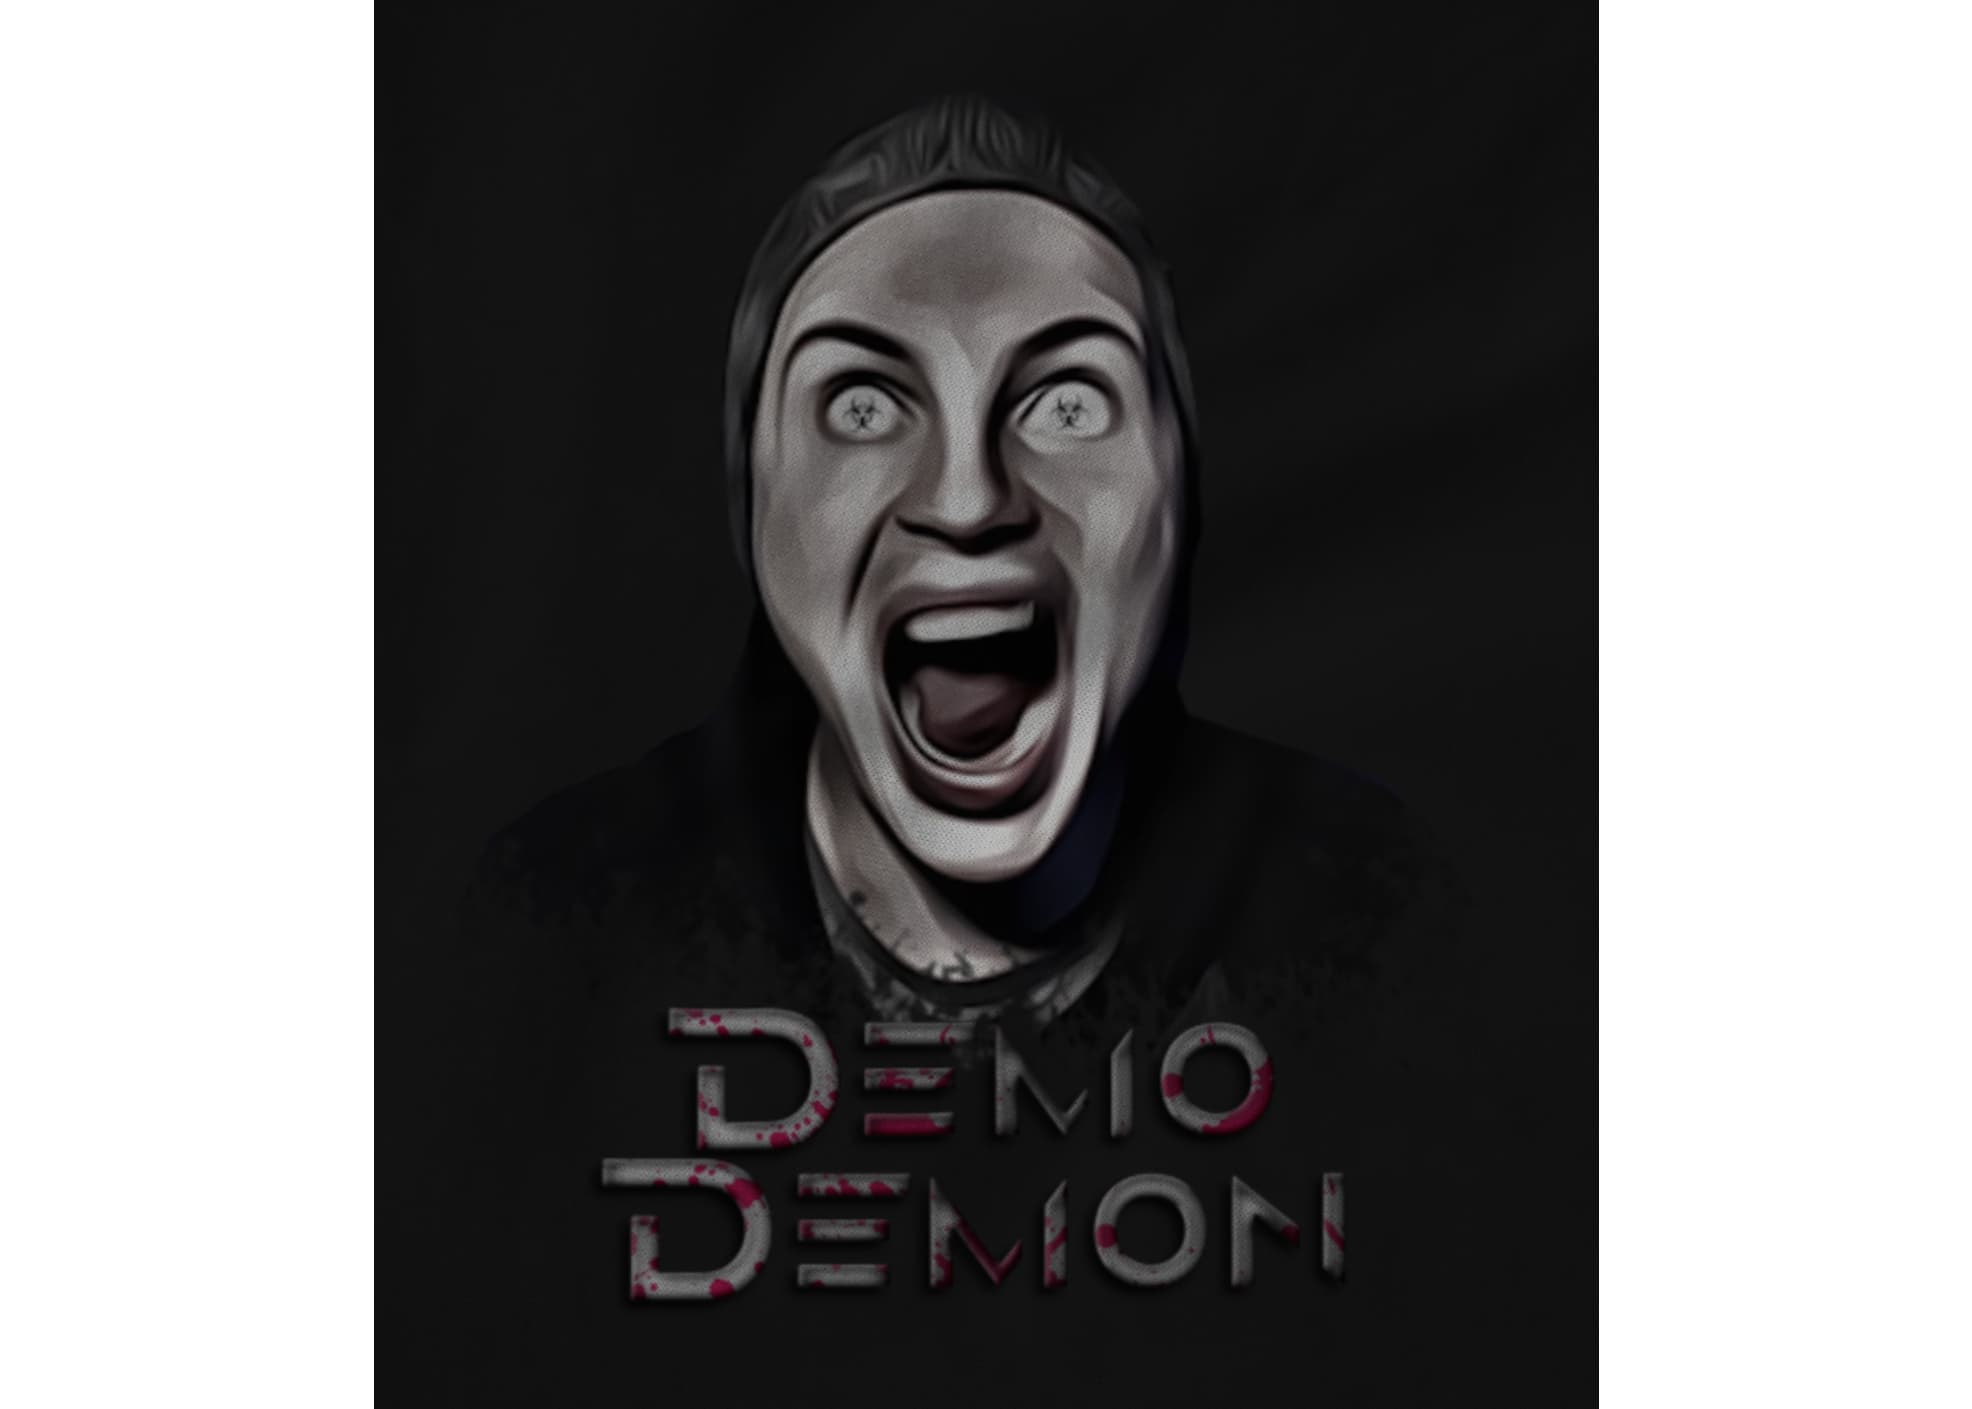 Demo demon quarintine 1595878788